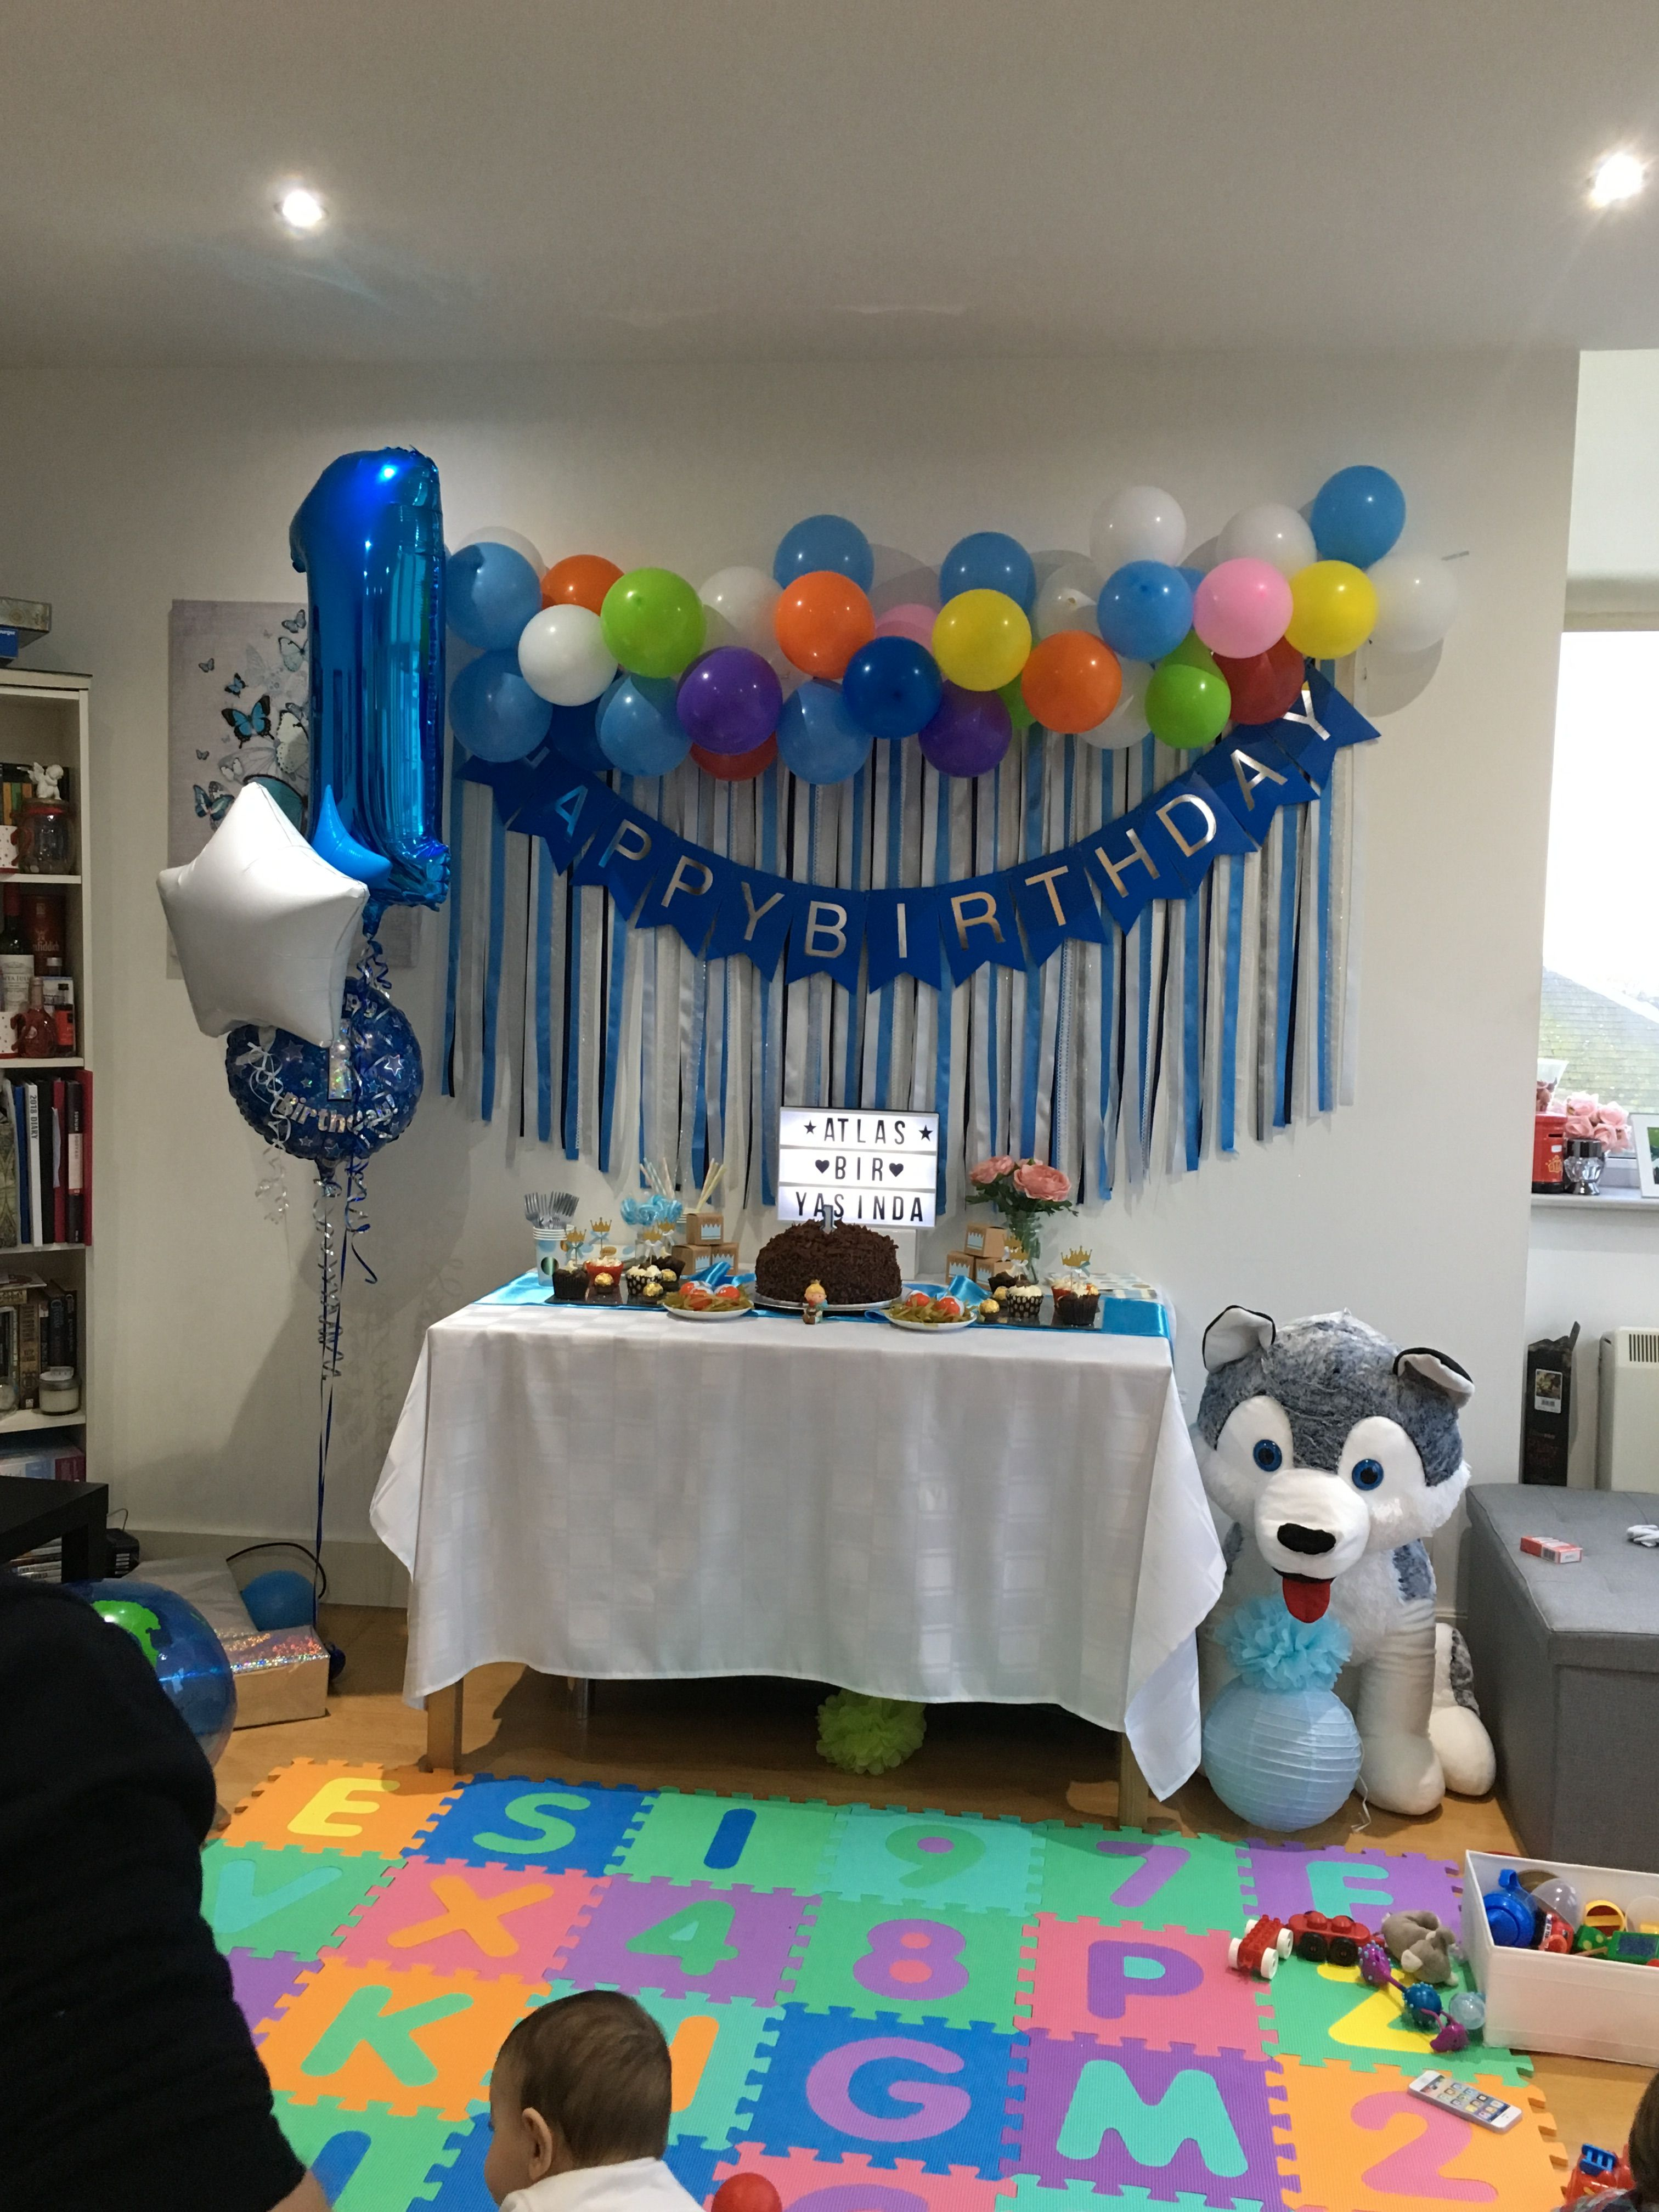 Atlas S First Birthday Birthday Firstbirthday Babyboy Table